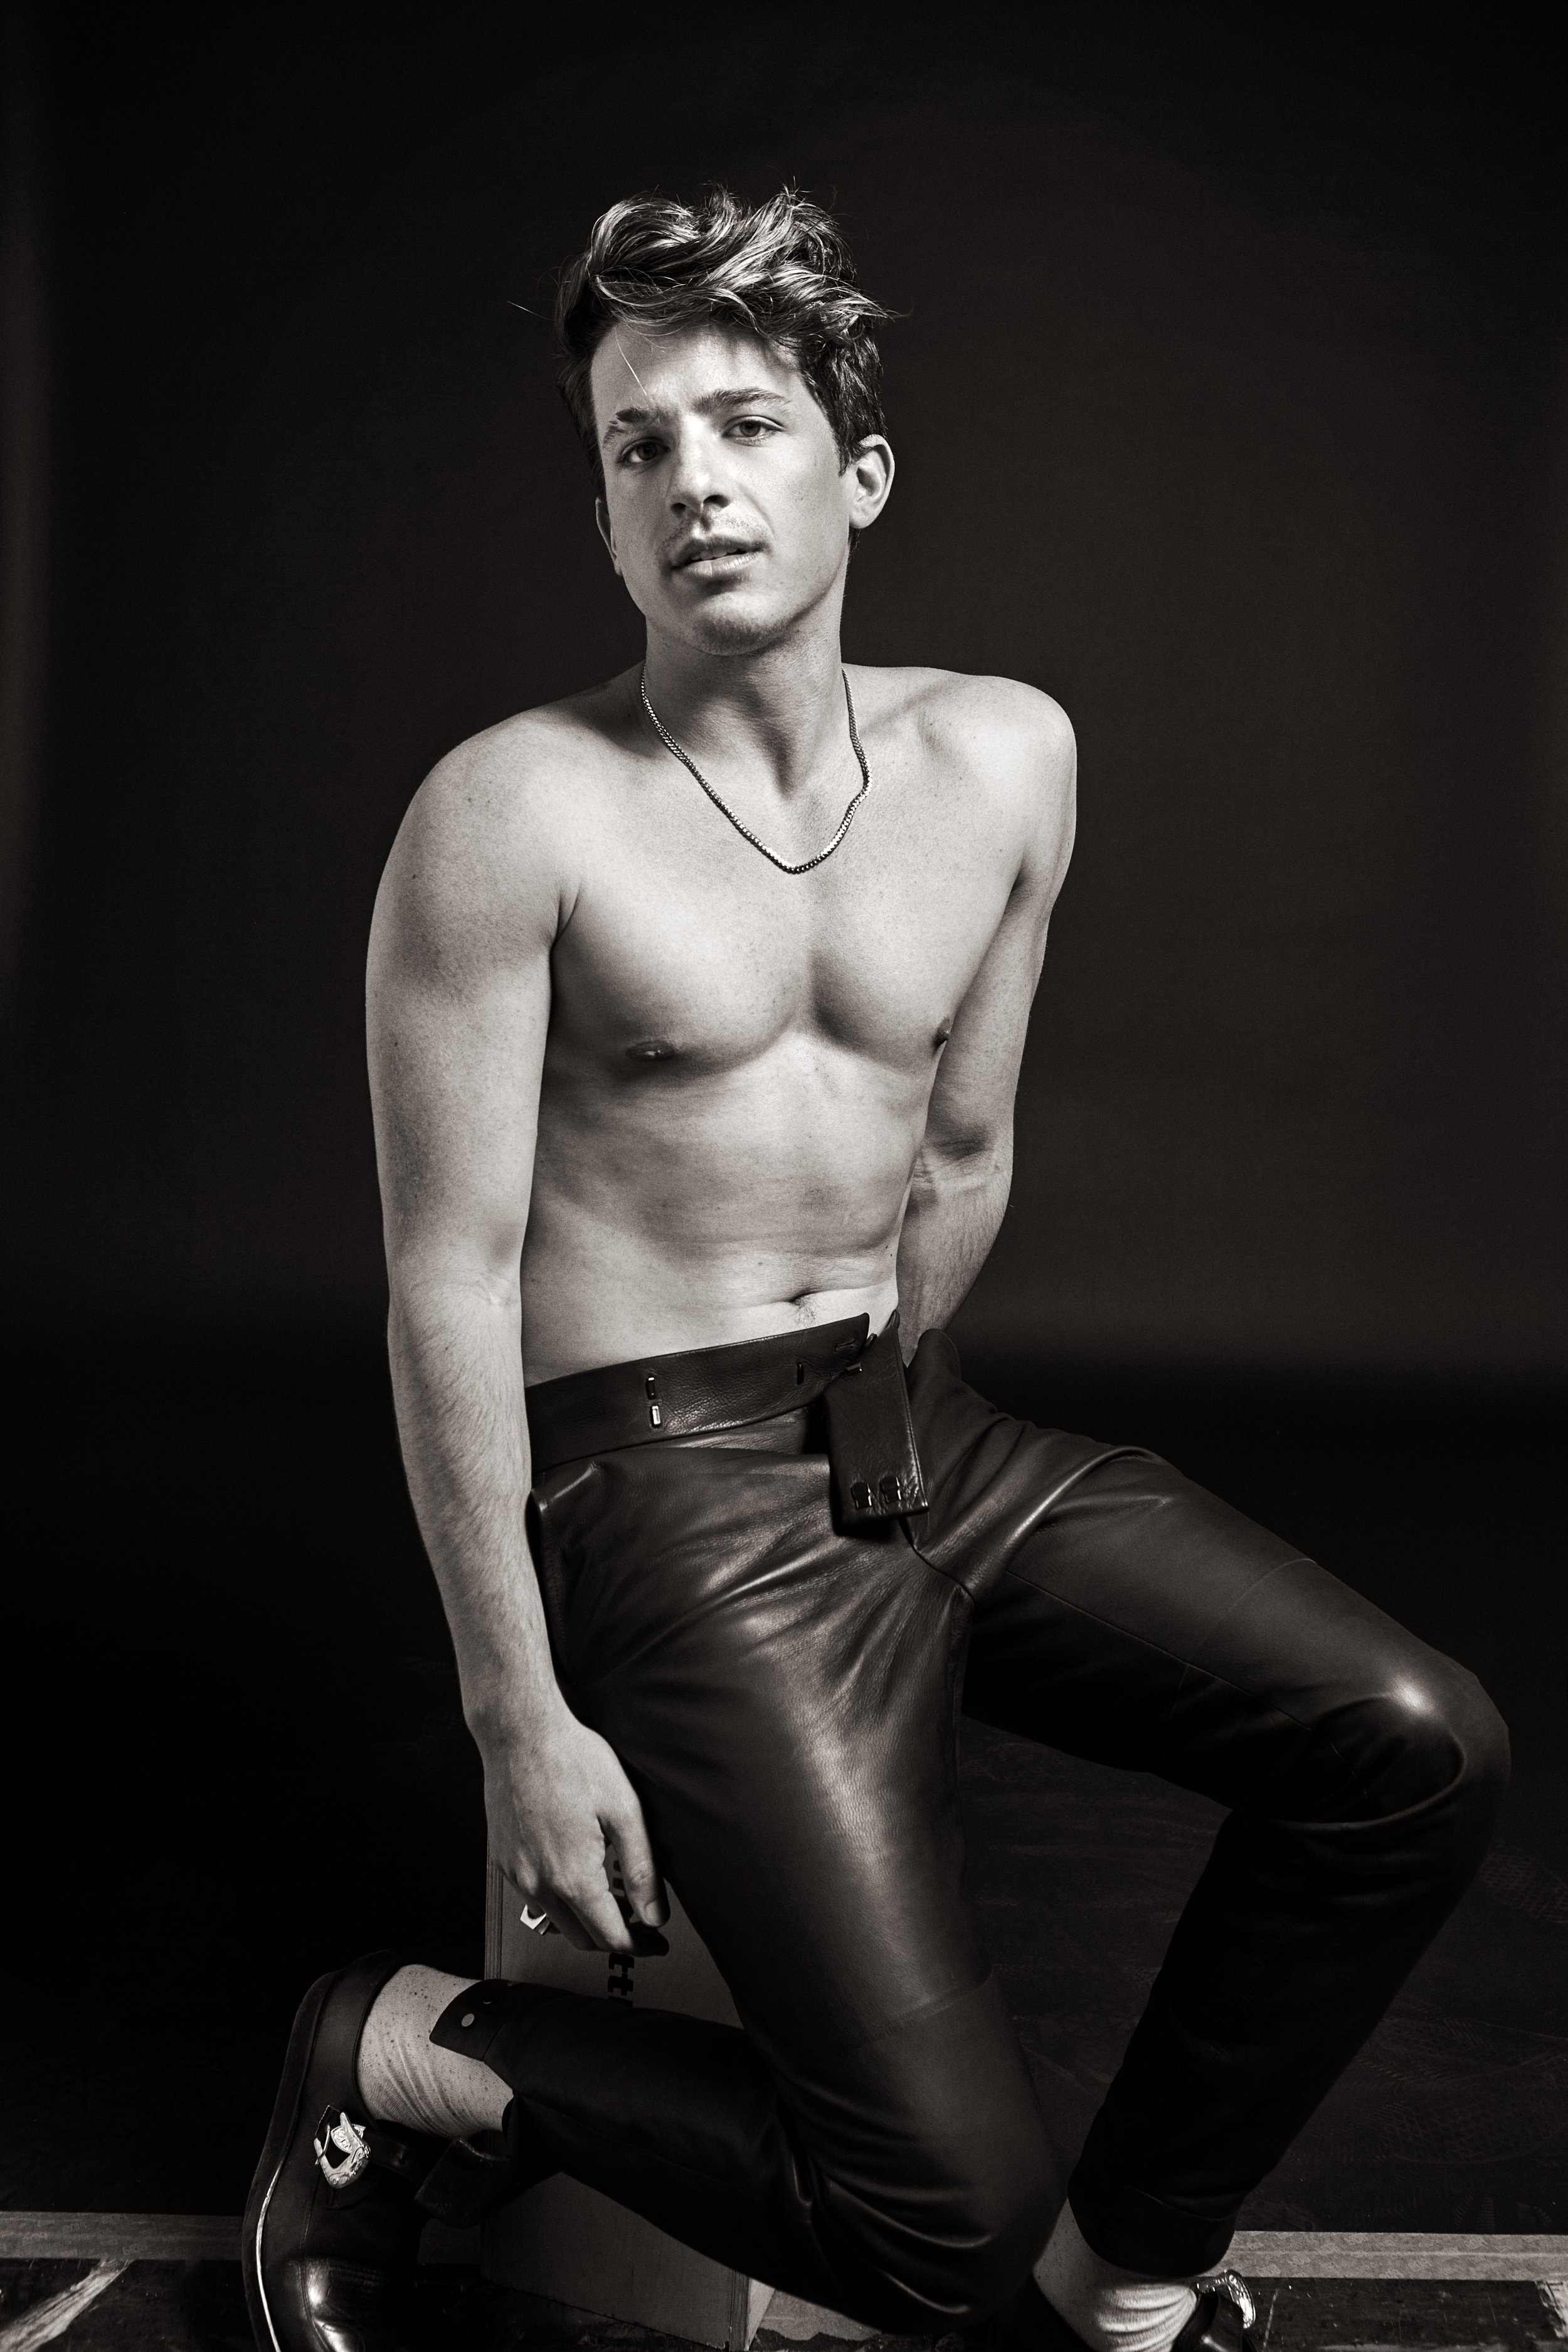 FLAUNT-MAGAZINE-COVER-CHARLIE-PUTH-SINGER-ATTENTION-VOICENOTES-4.jpg